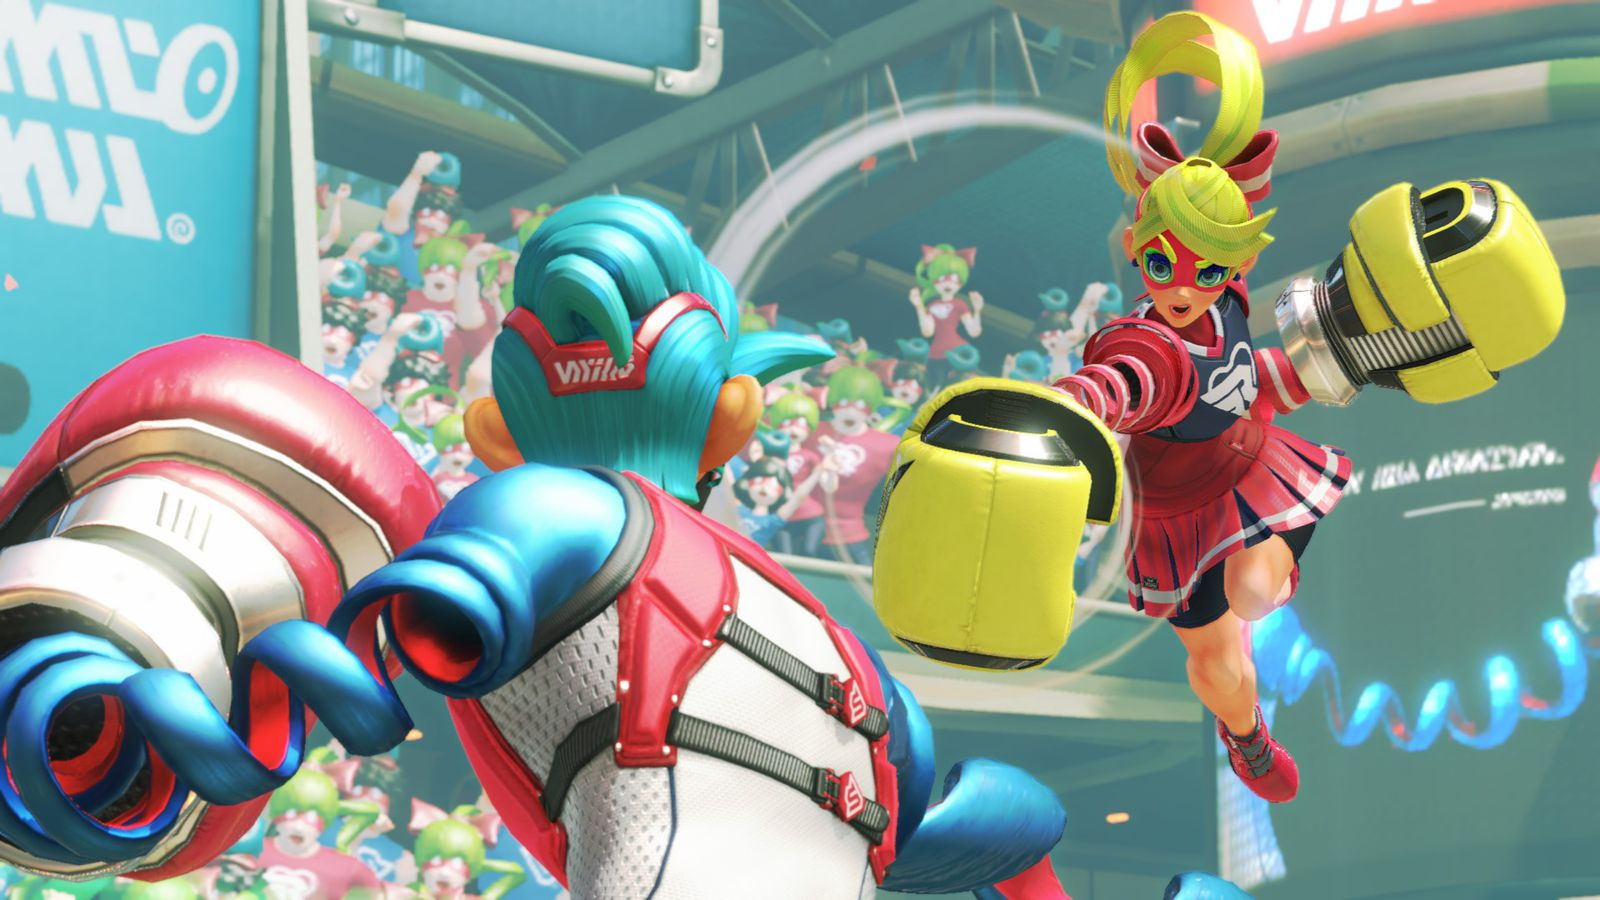 New Arms art shakes up everything we thought about the fighters' limbs